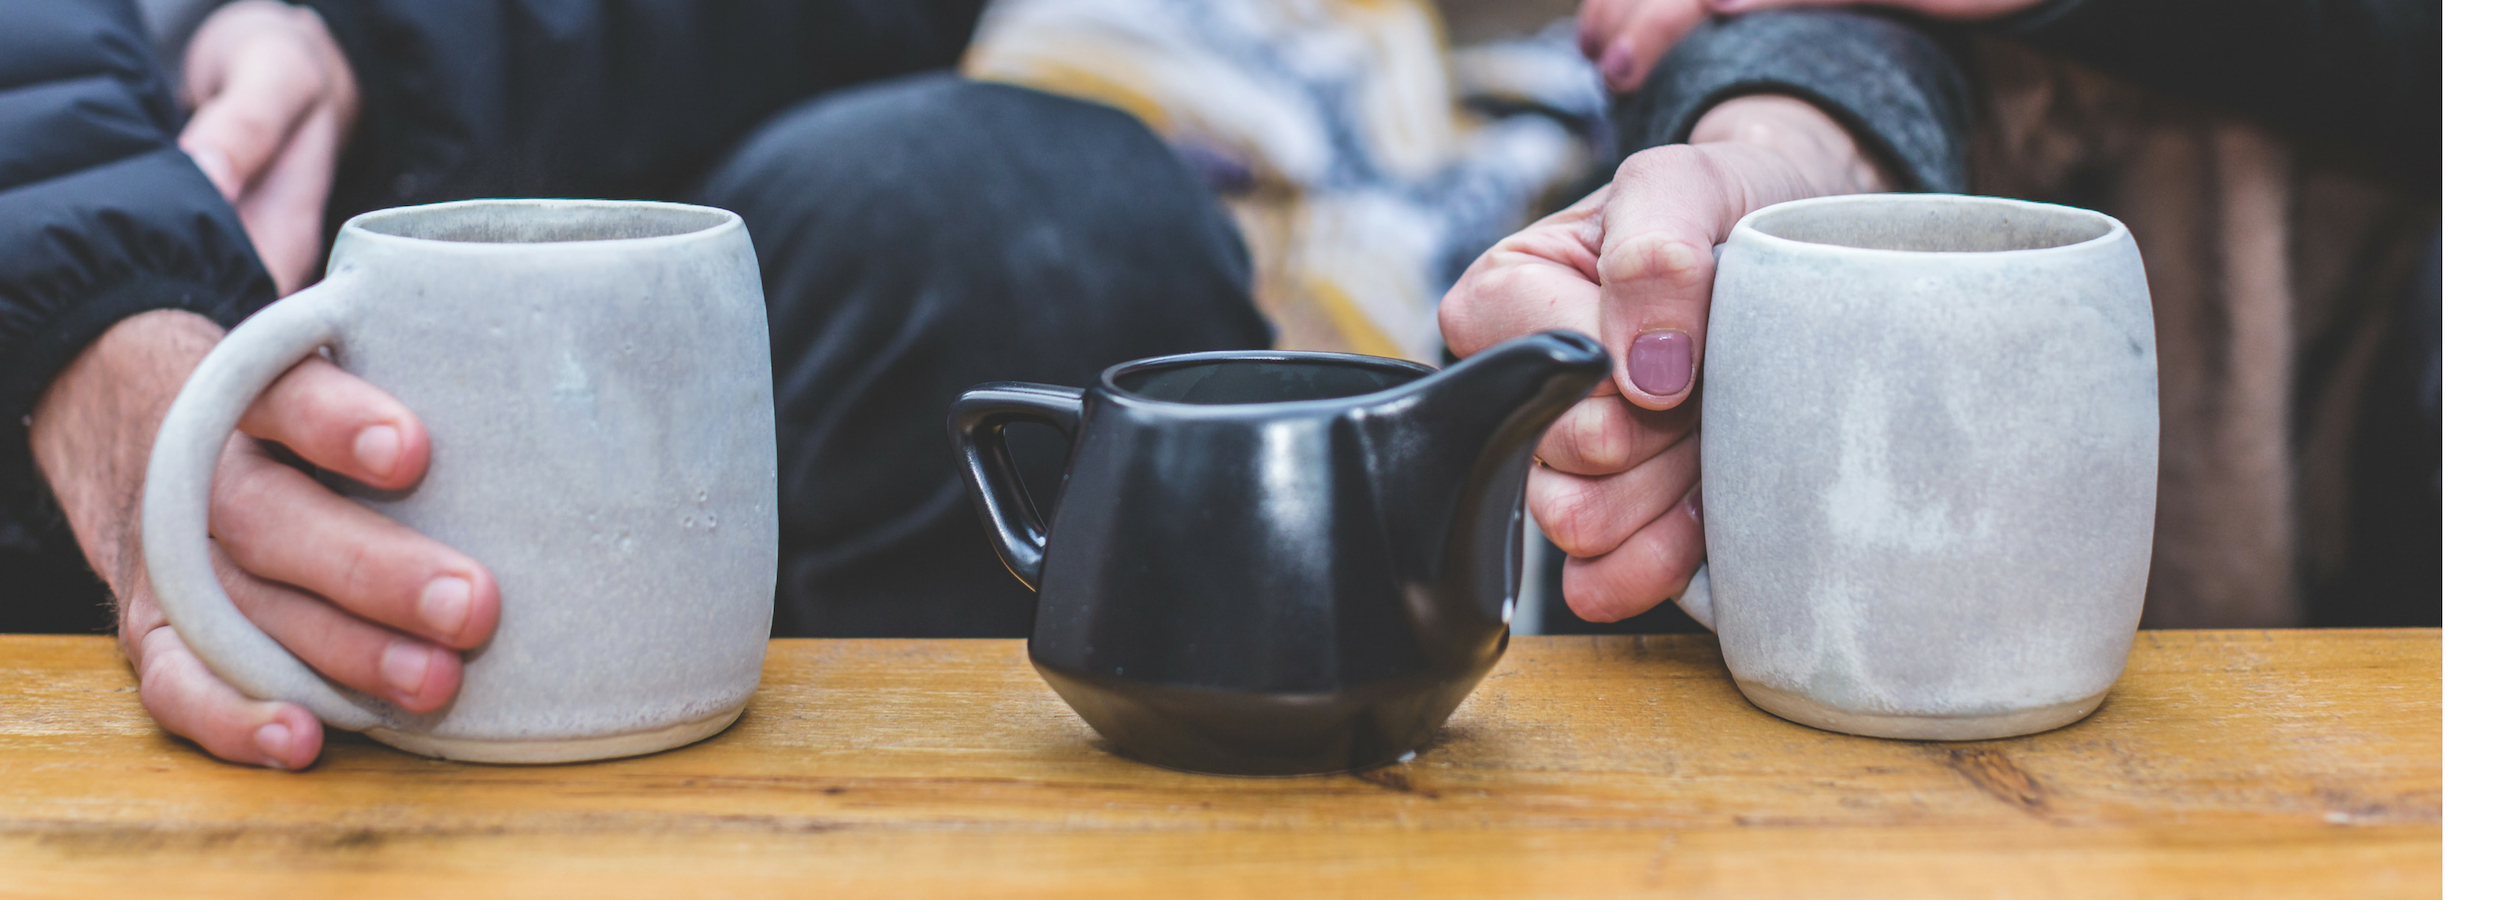 Selling is nothing more than a focused conversation. It is so much harder to sell into an environment you know little about. So instead of talking, try listening for long periods of time. Learn, understand, appreciate the situation and the moment before you. Then, and only then, provide the solution you offer to make a difference in their lives.